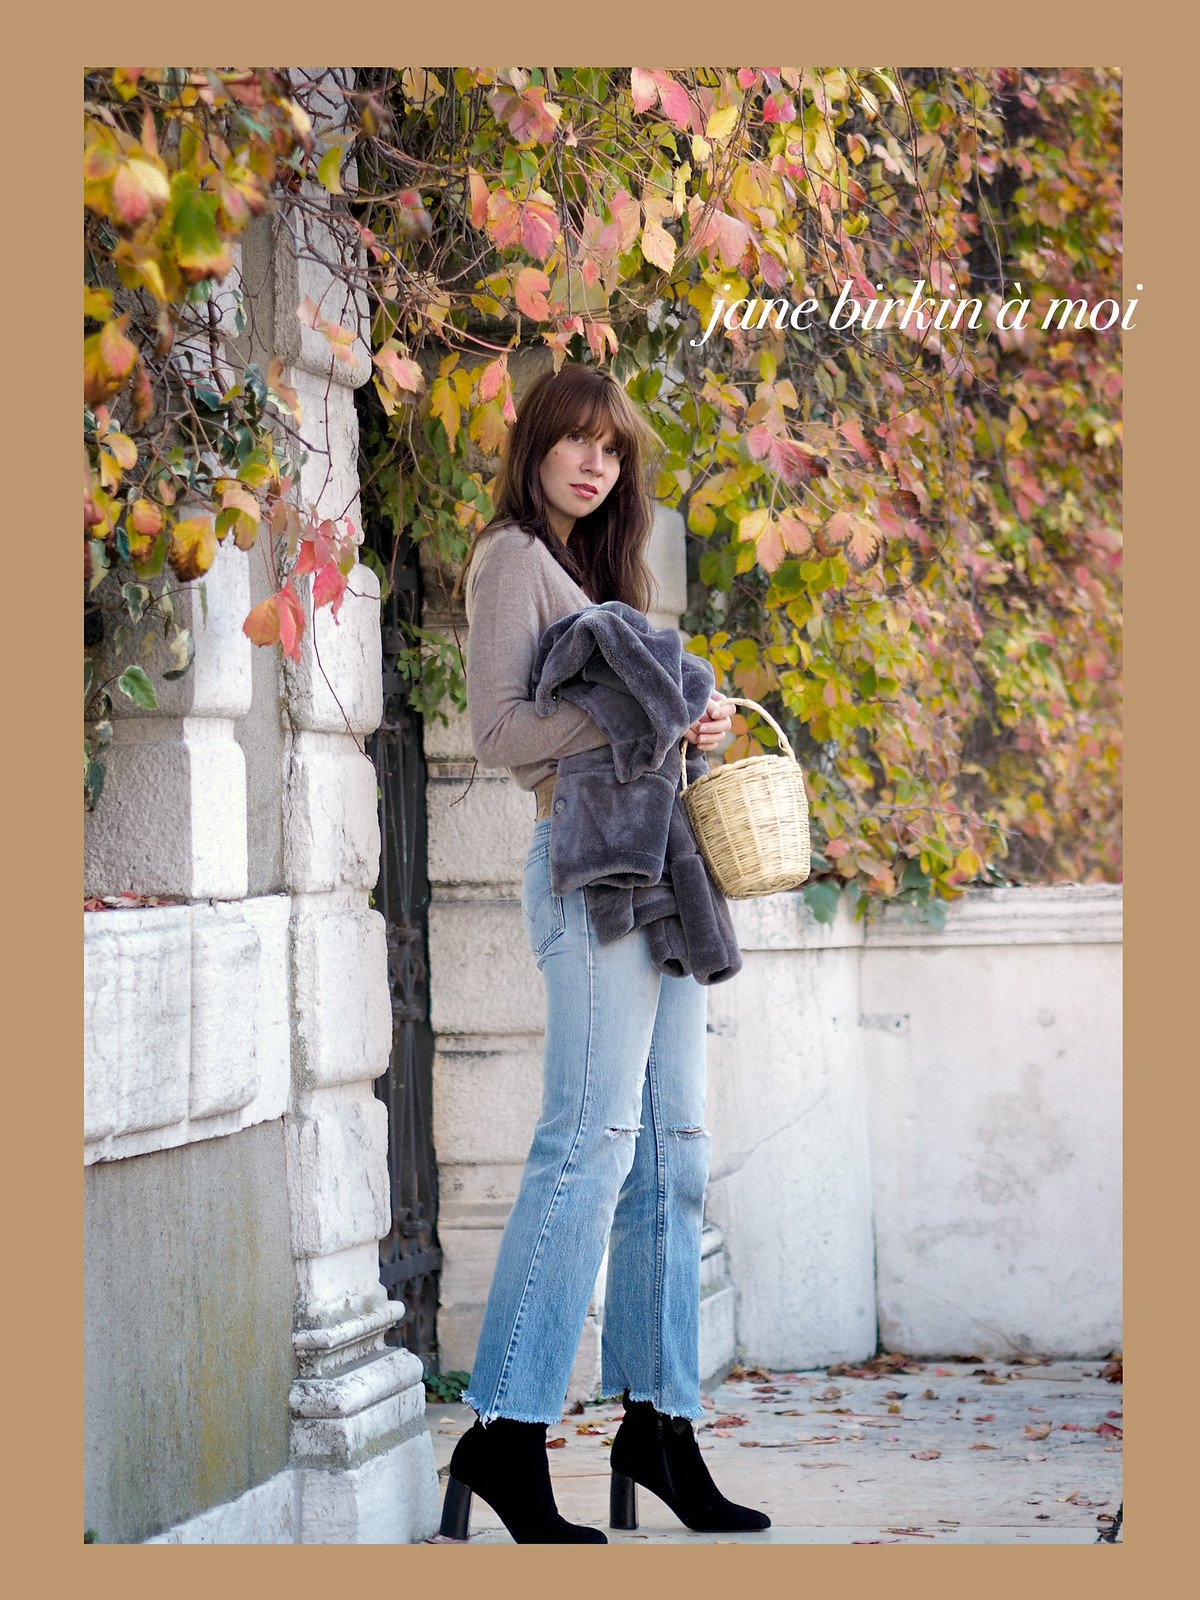 mbym fake fur jacket steppjacke winter boots sacha jane birkin style basket seventies 70s style parisienne chic autumn winter fashionblogger cats & dogs ricarda schernus 5